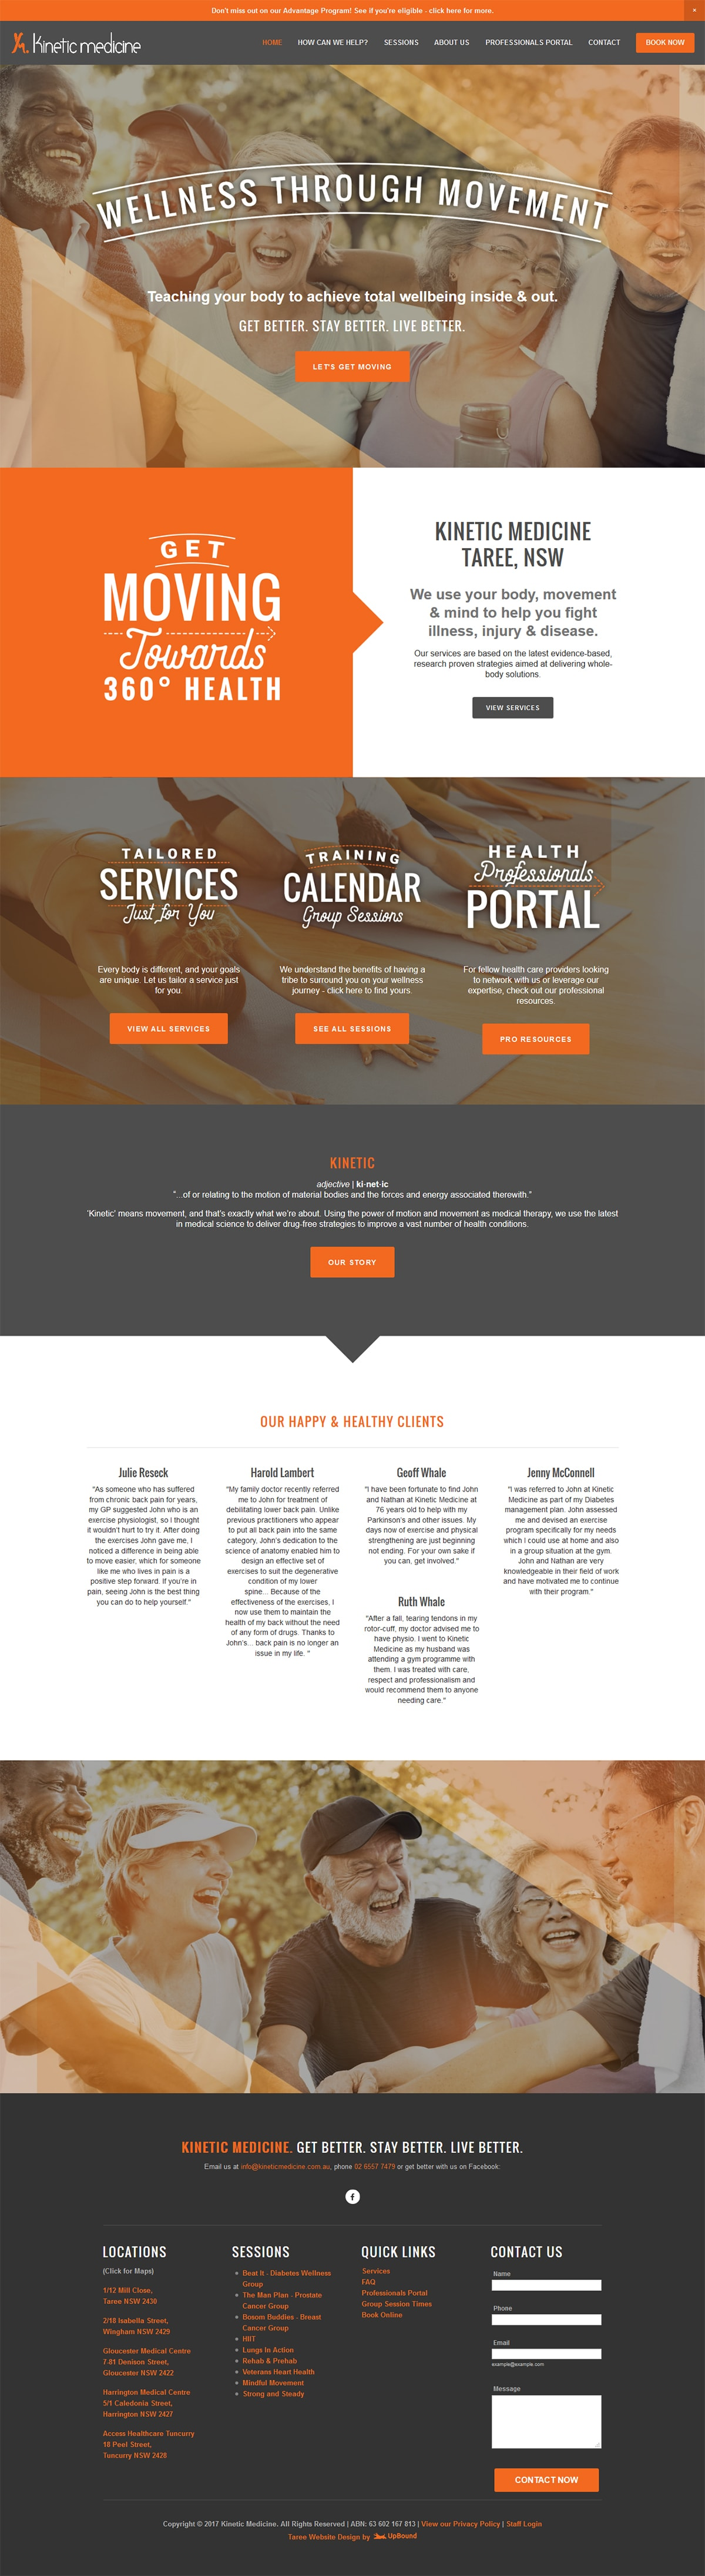 The Kinetic Medicine Homepage - a sample of the website design.